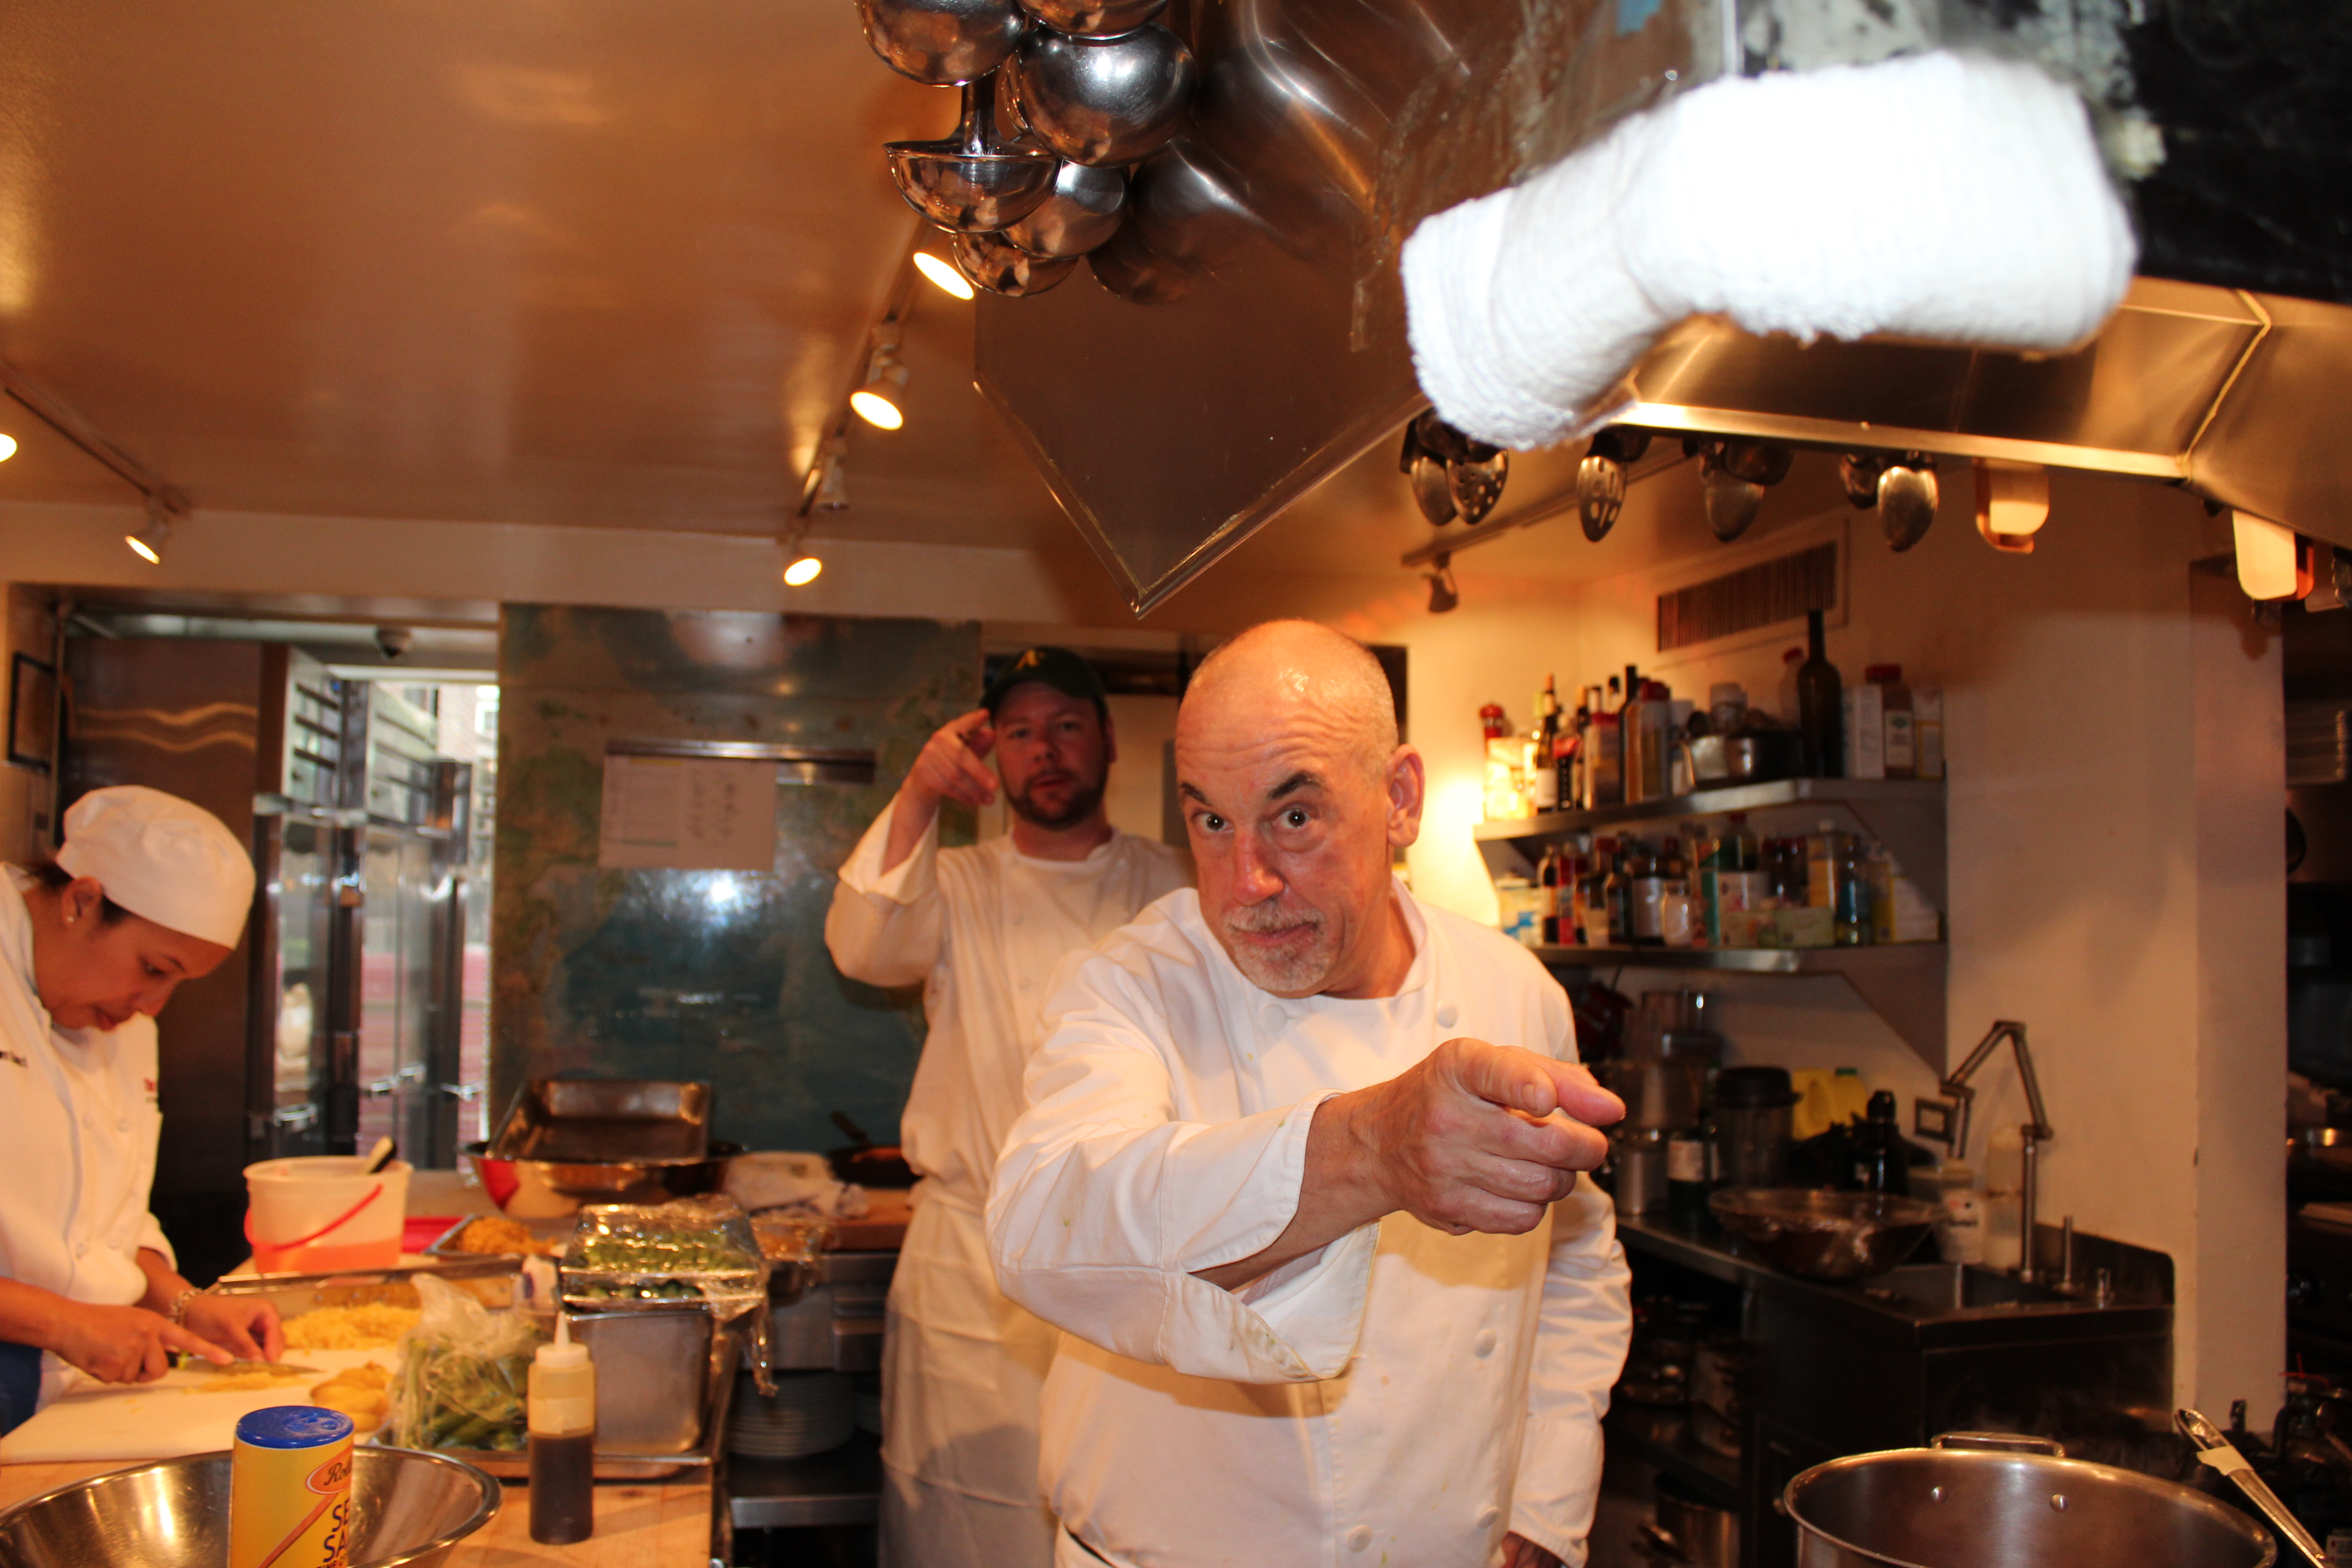 Farmhouse Chef Steve in James Beard kitchen